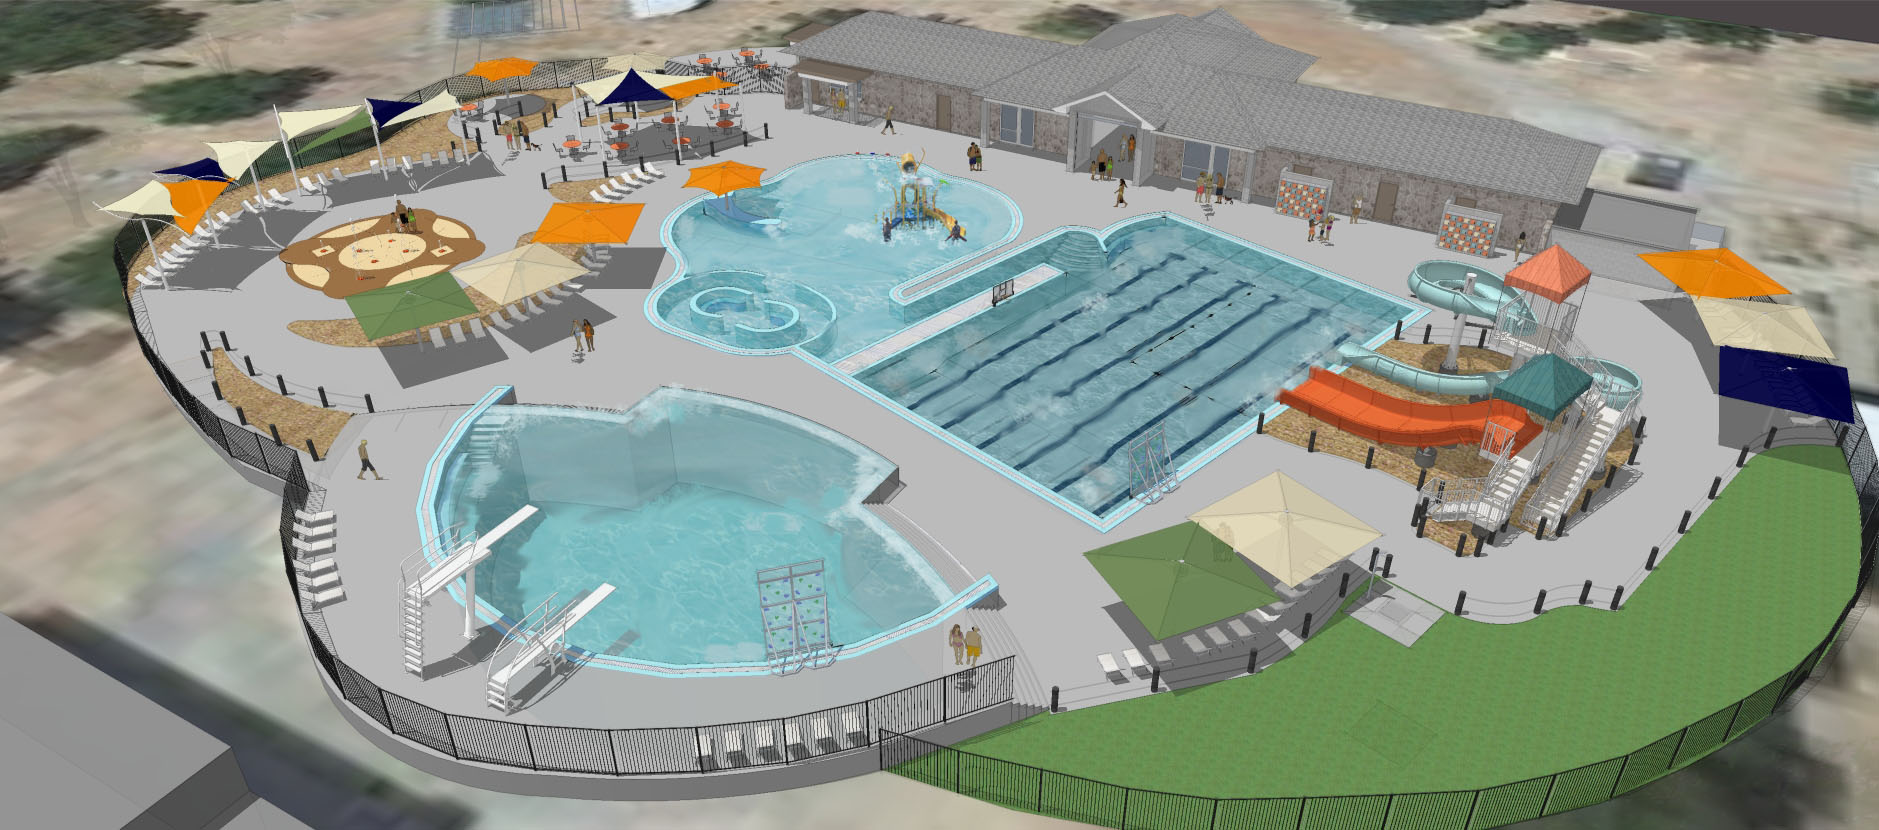 New parks swimming pool vlpn design on vine for New swimming pool